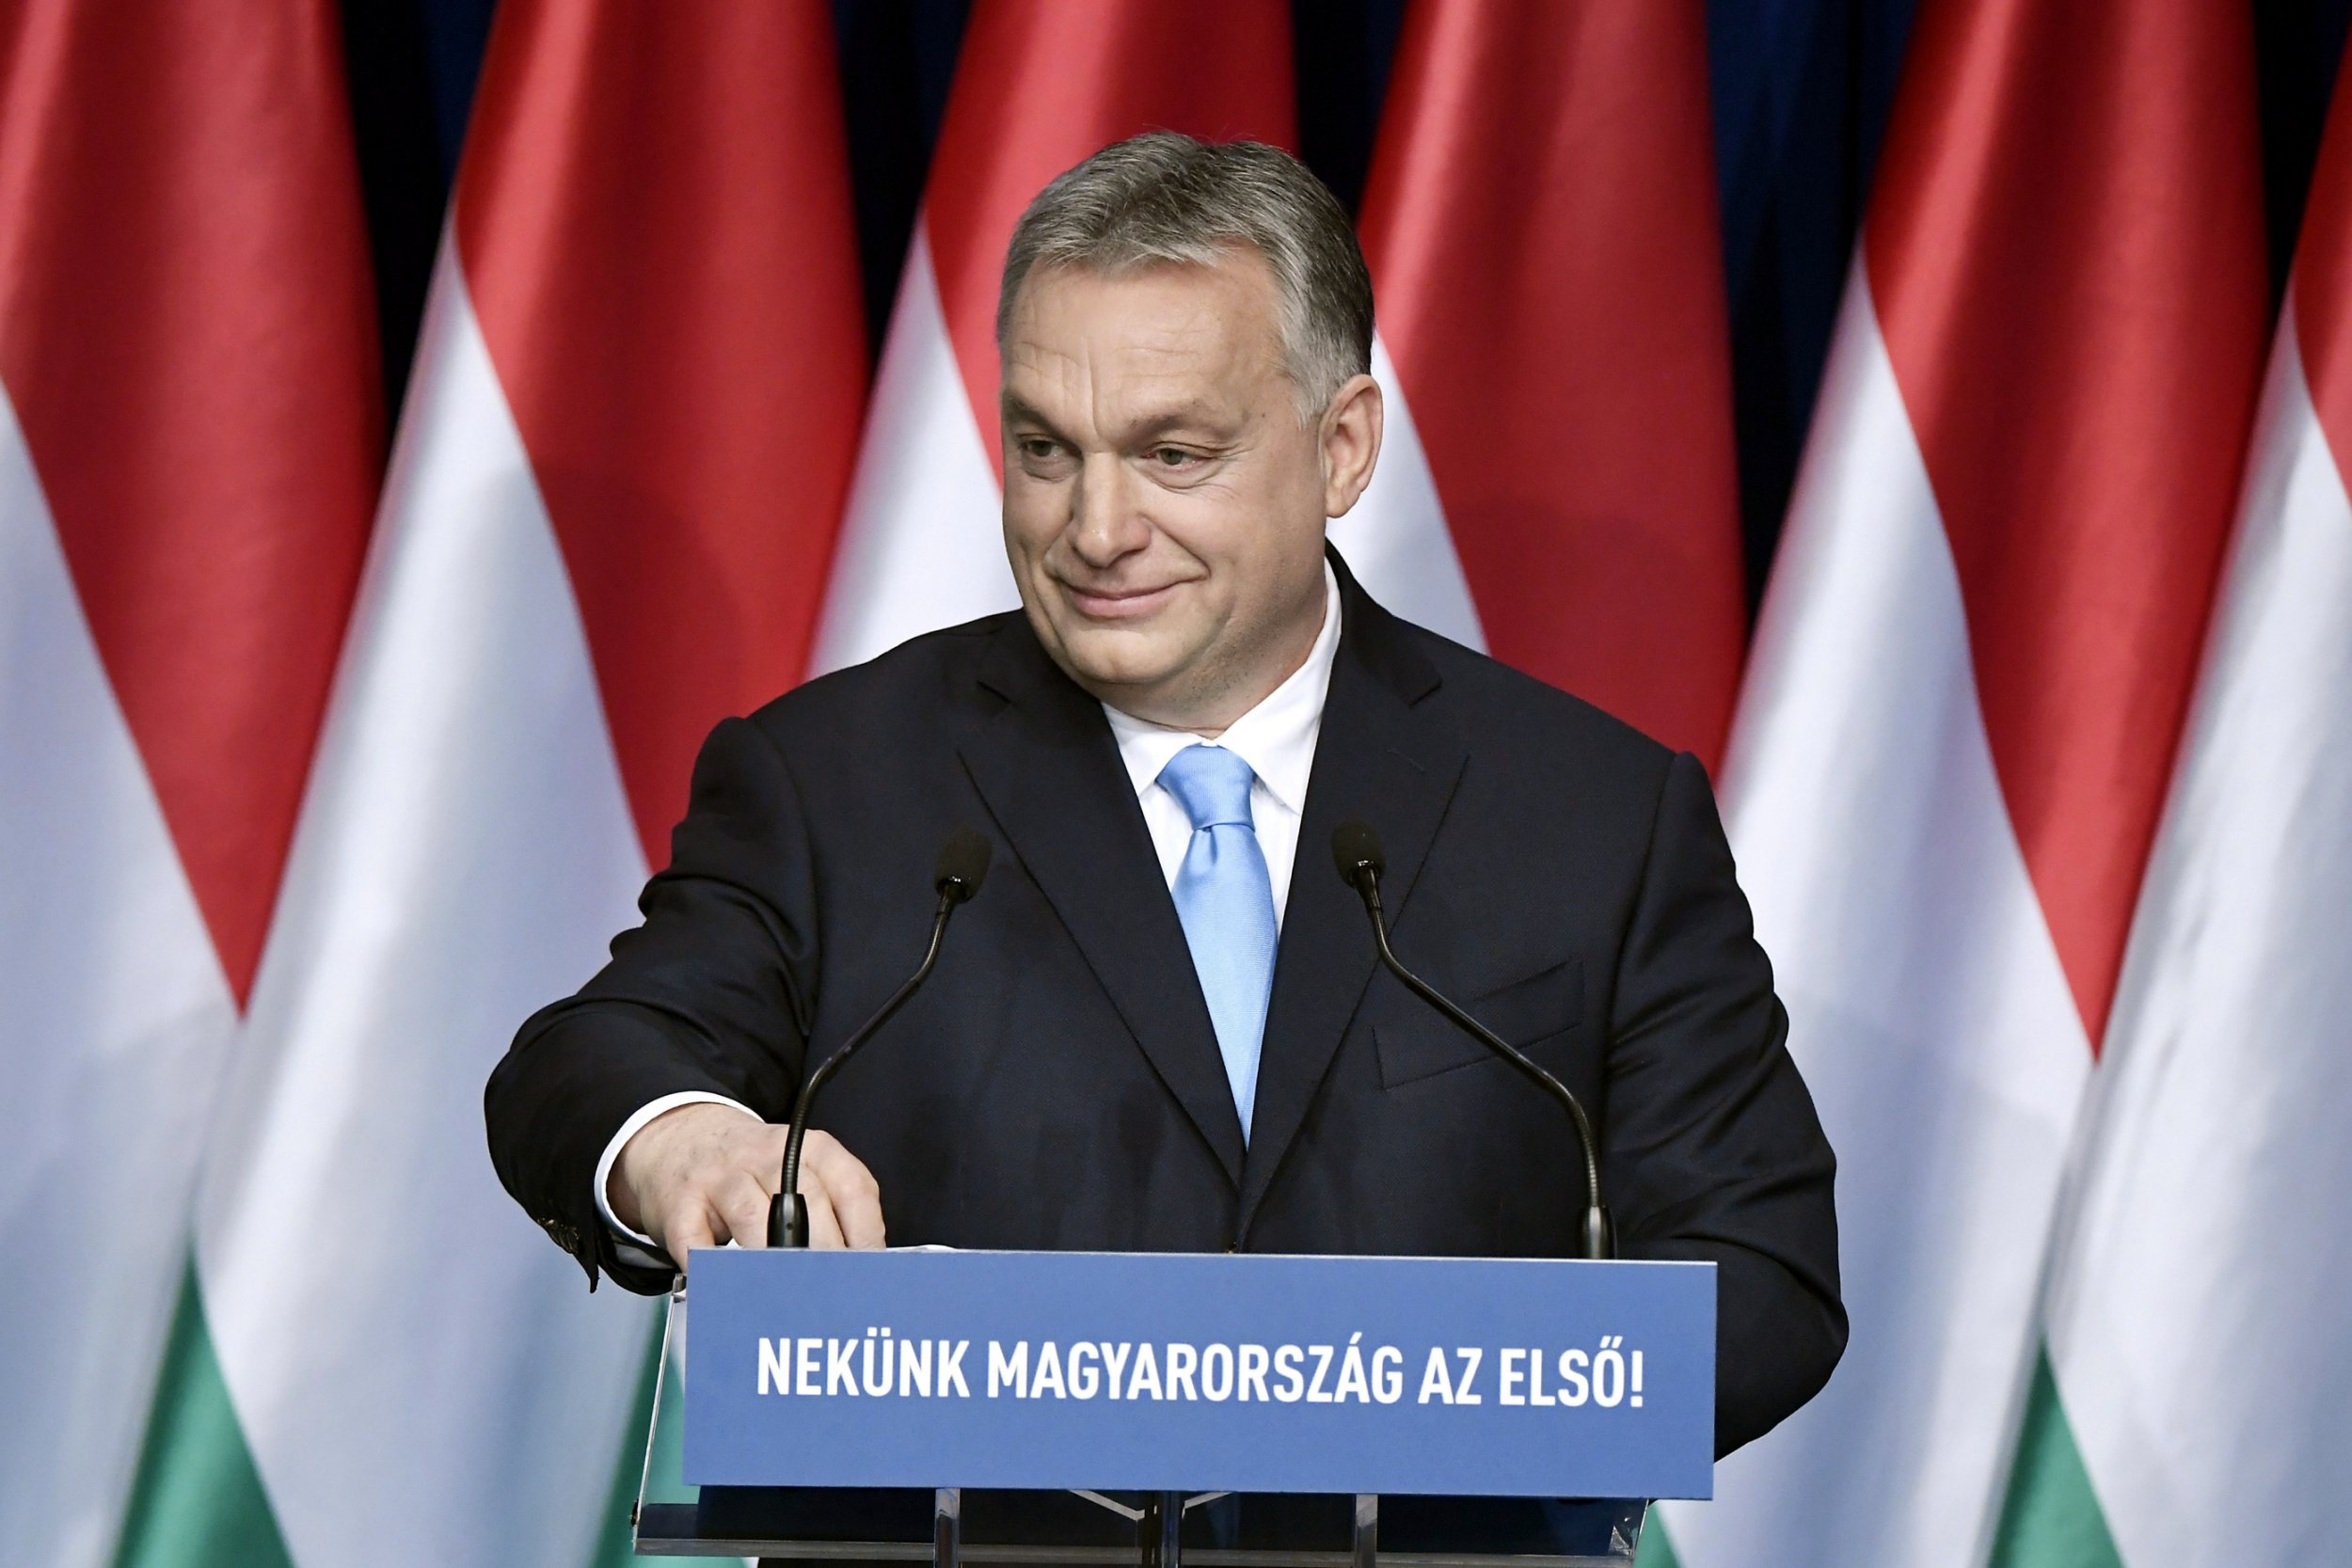 epa07359317 Hungarian Prime Minister Viktor Orban delivers his annual State of the nation speech in Budapest, Hungary, 10 February 2019. The Hungarian government will keep economic growth two percent above the European Union average in the coming years despite an expected slowdown in the global economy, Orban said. EPA/SZILARD KOSZTICSAK HUNGARY OUT